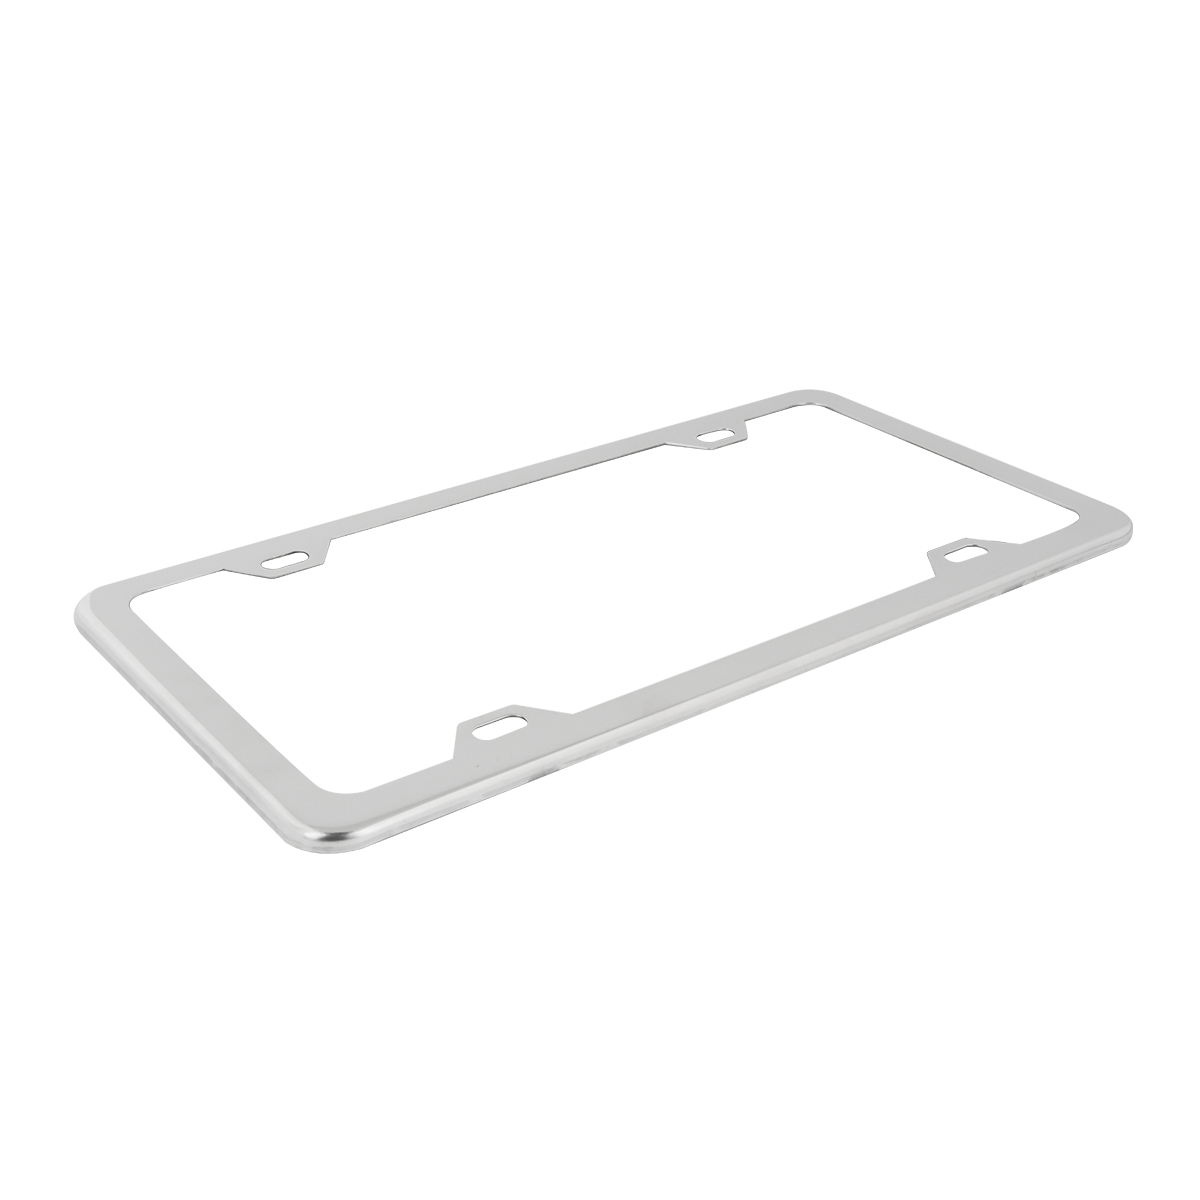 60412 Plain Chrome Plated 4 Hole License Plate Frame - Top View